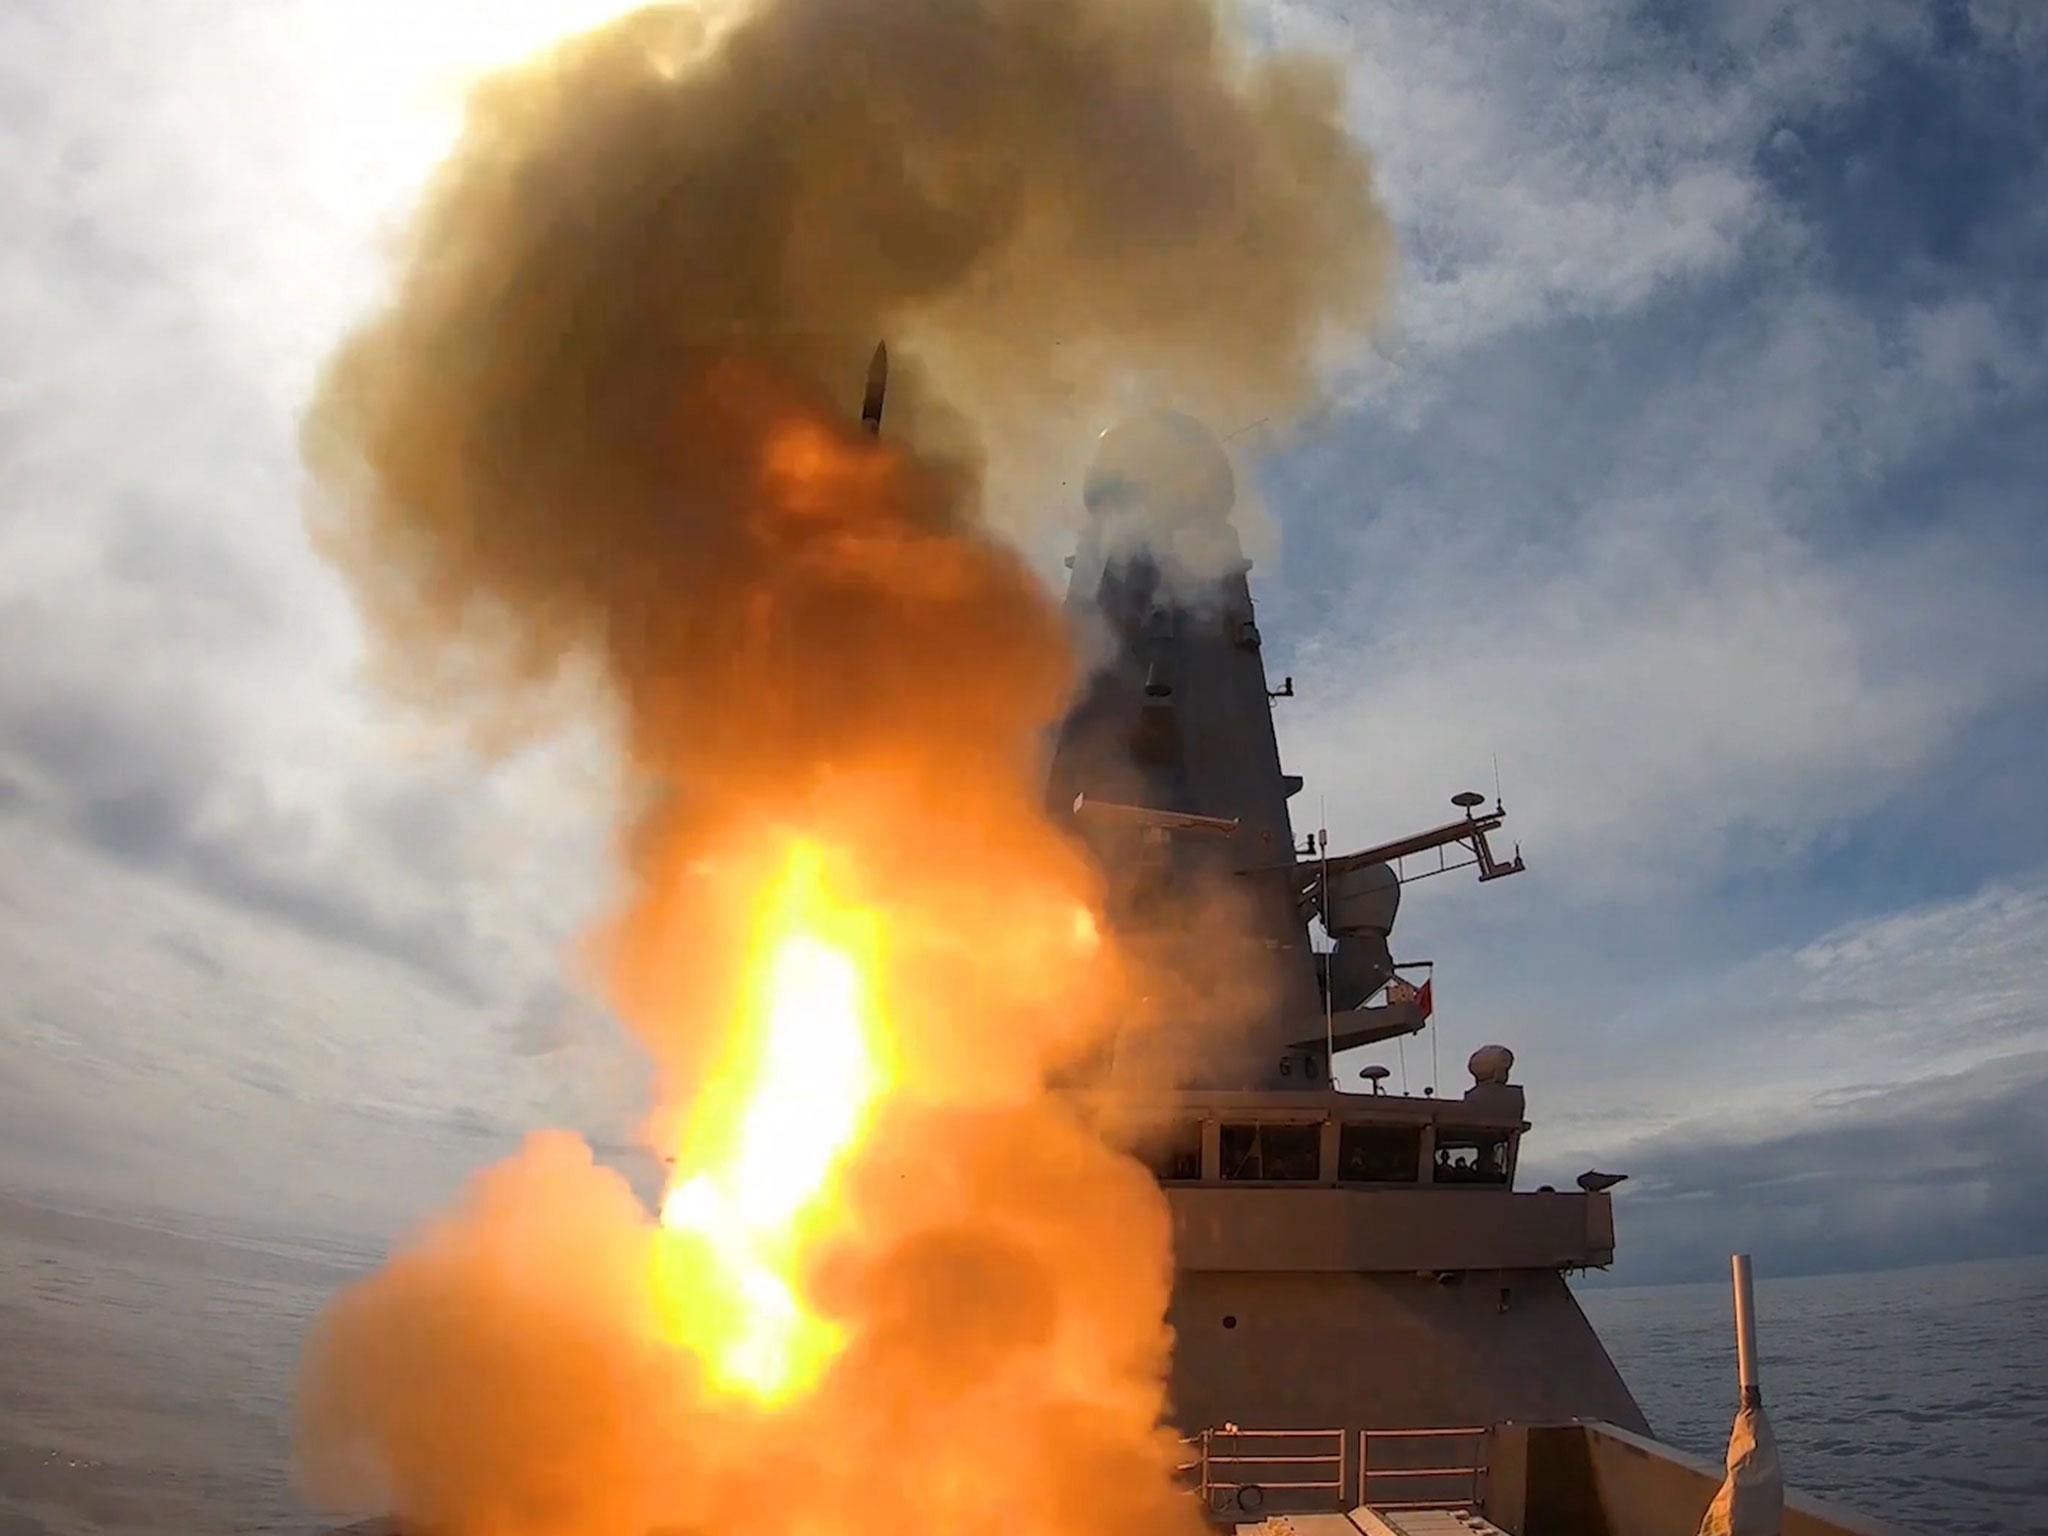 In a burst of fire and smoke, Royal Navy warship HMS